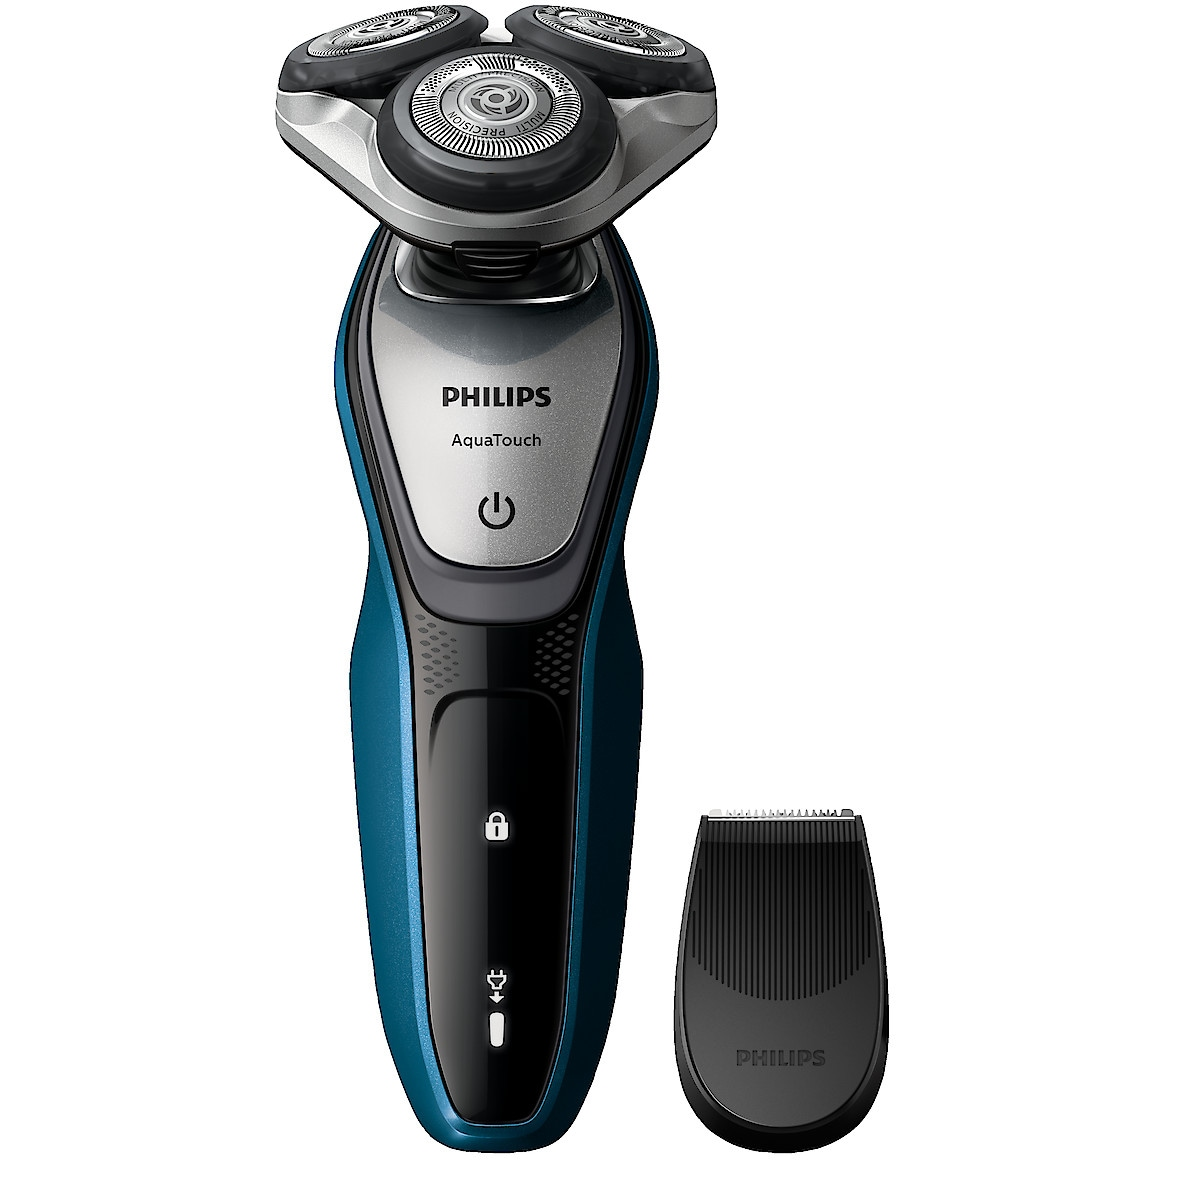 Rakapparat Philips AquaTouch S5420/06